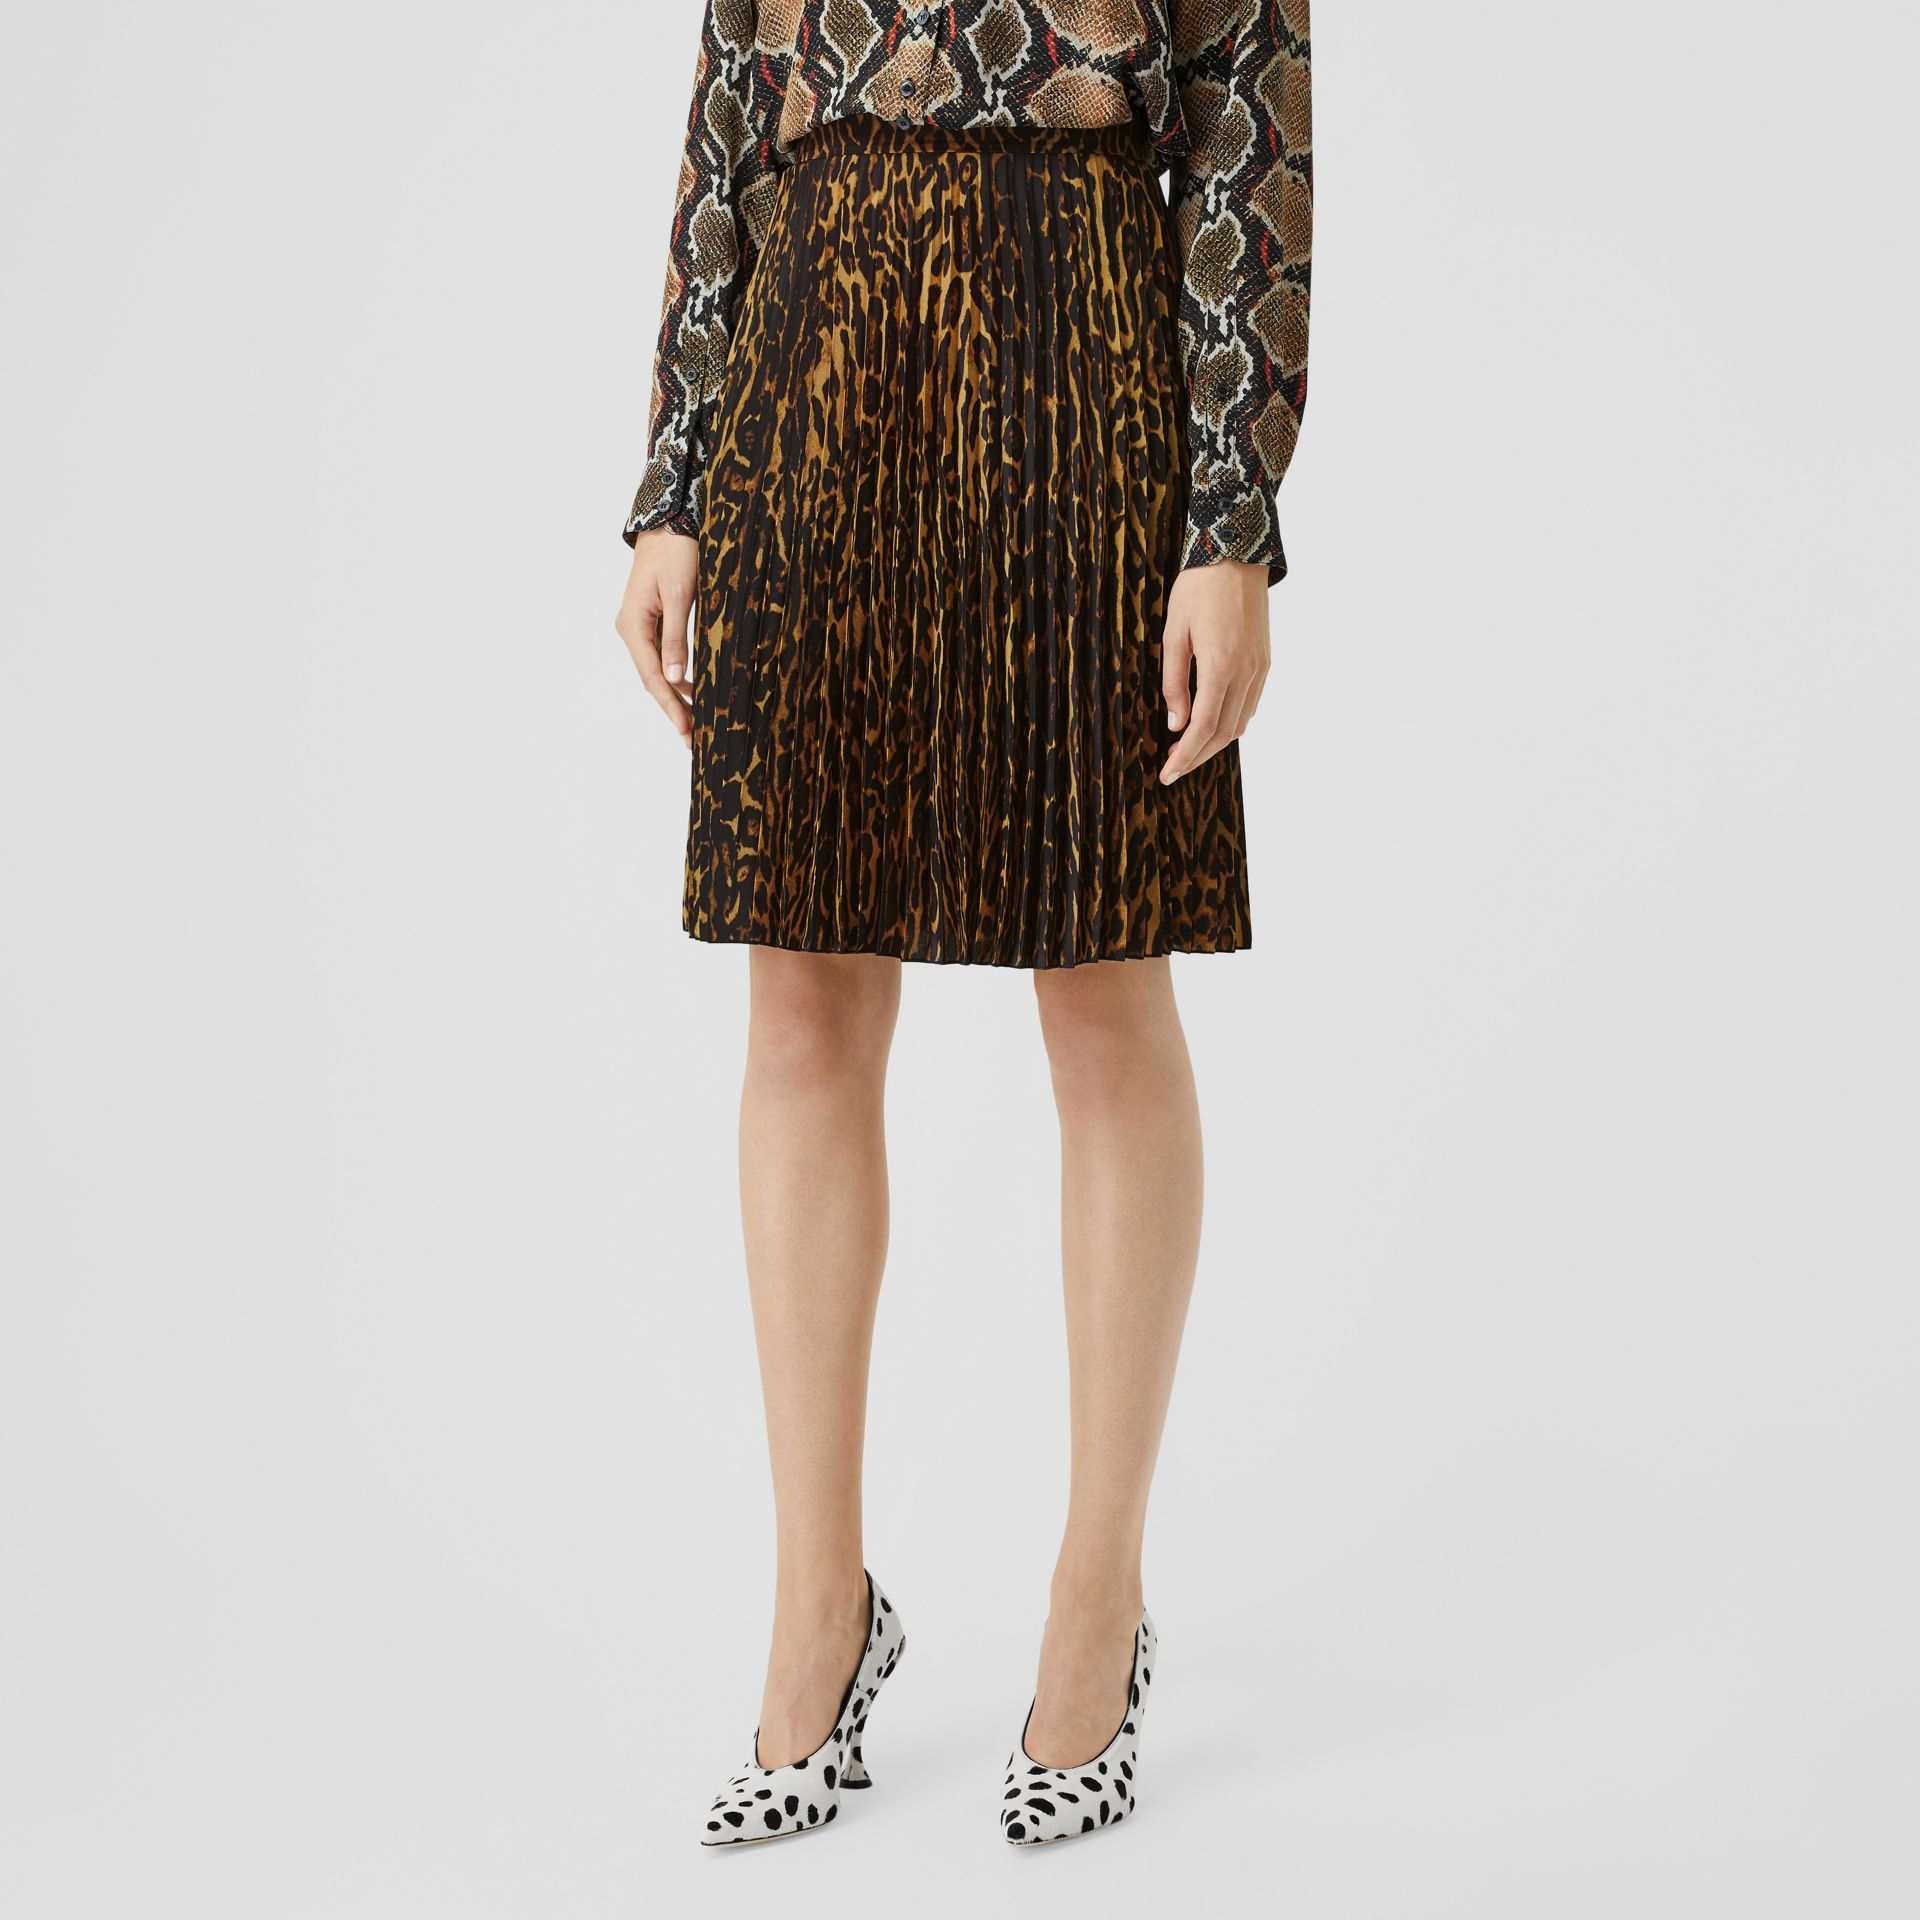 Leopard Print Pleated Skirt in Dark Mustard - Women | Burberry United Kingdom - gallery image 4